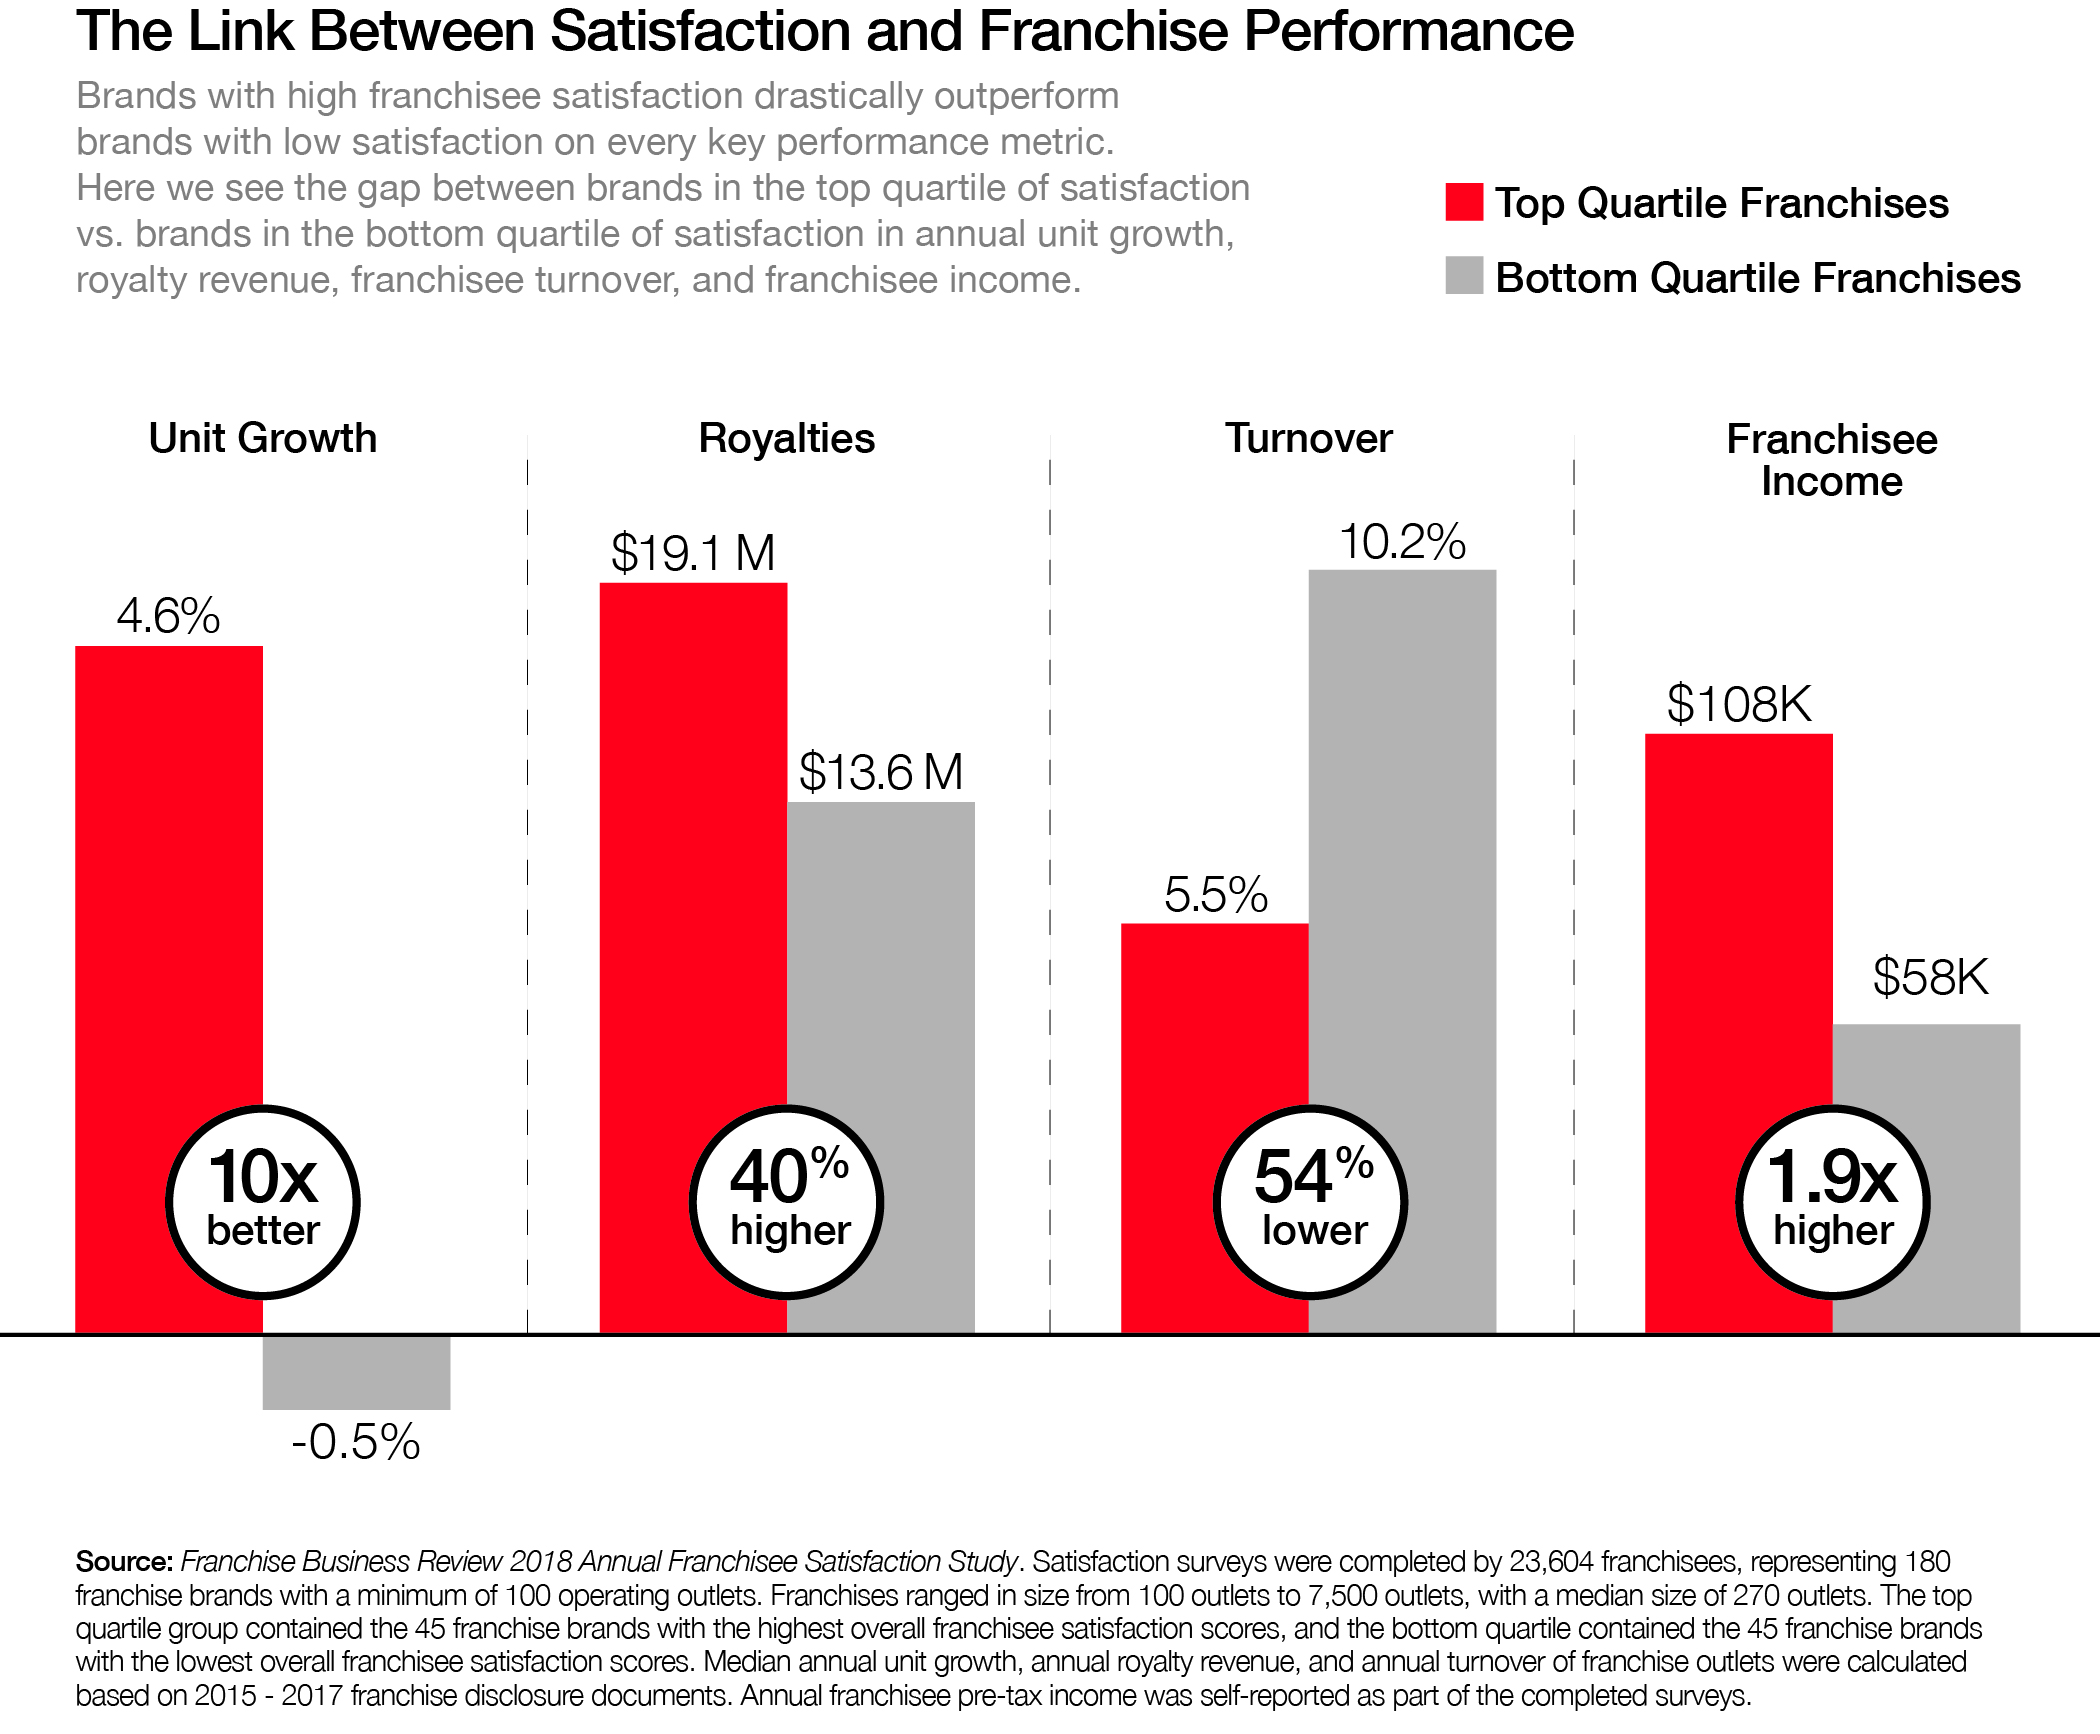 The Link Between Franchisee Satisfaction and Performance